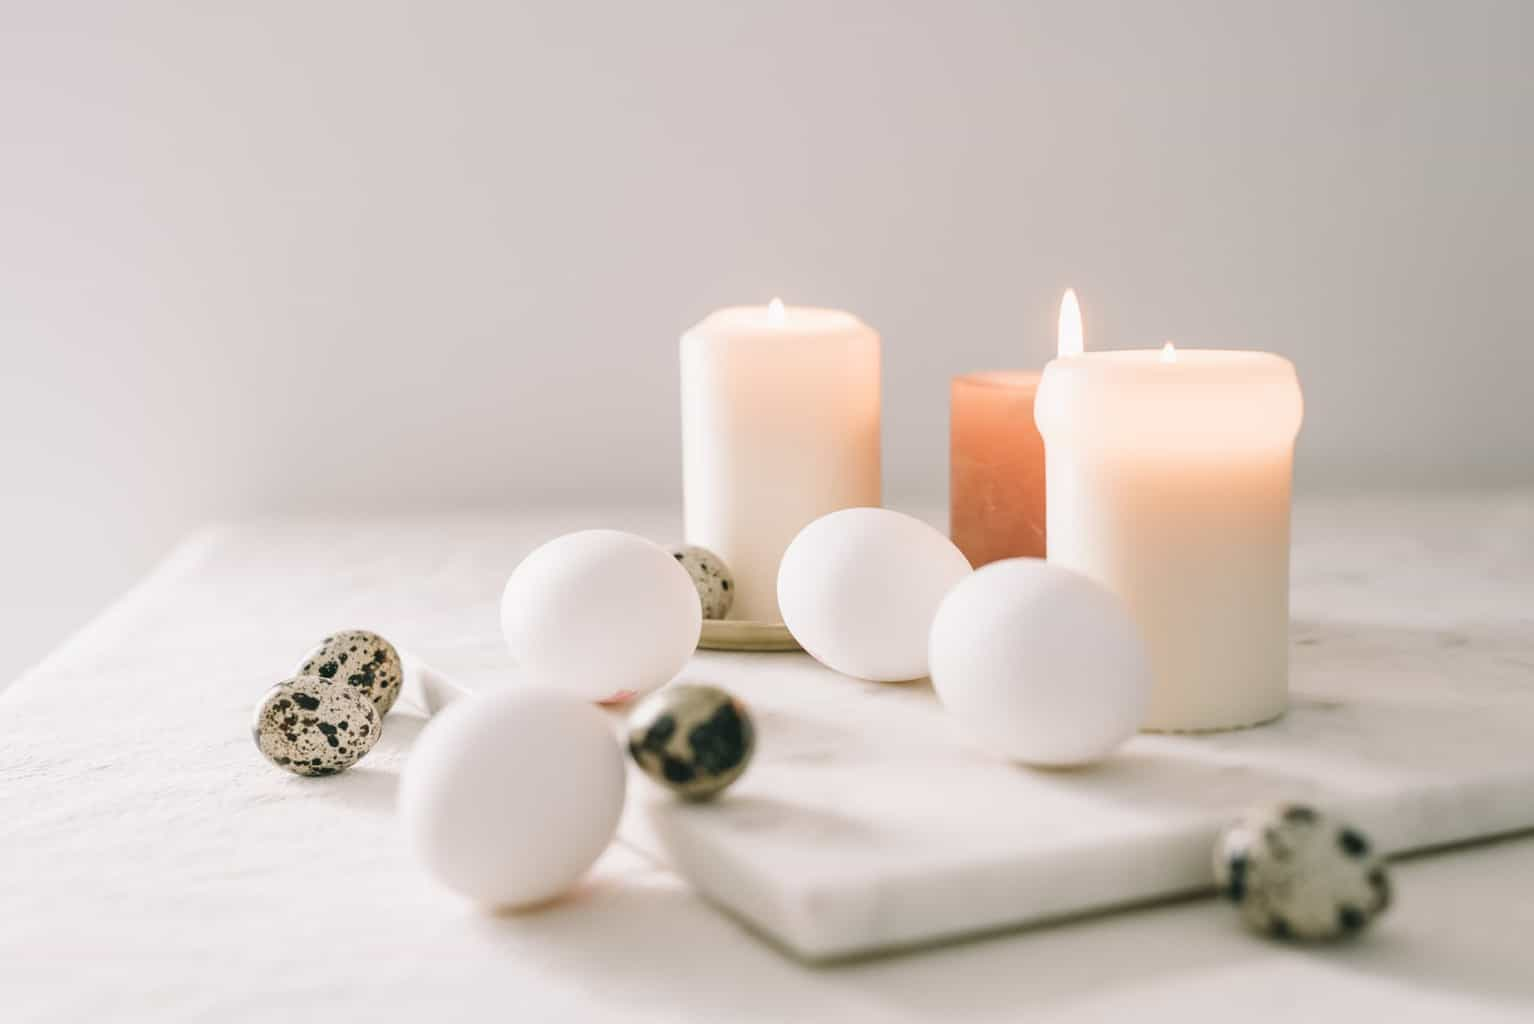 white eggs and quail eggs beside lighted candles